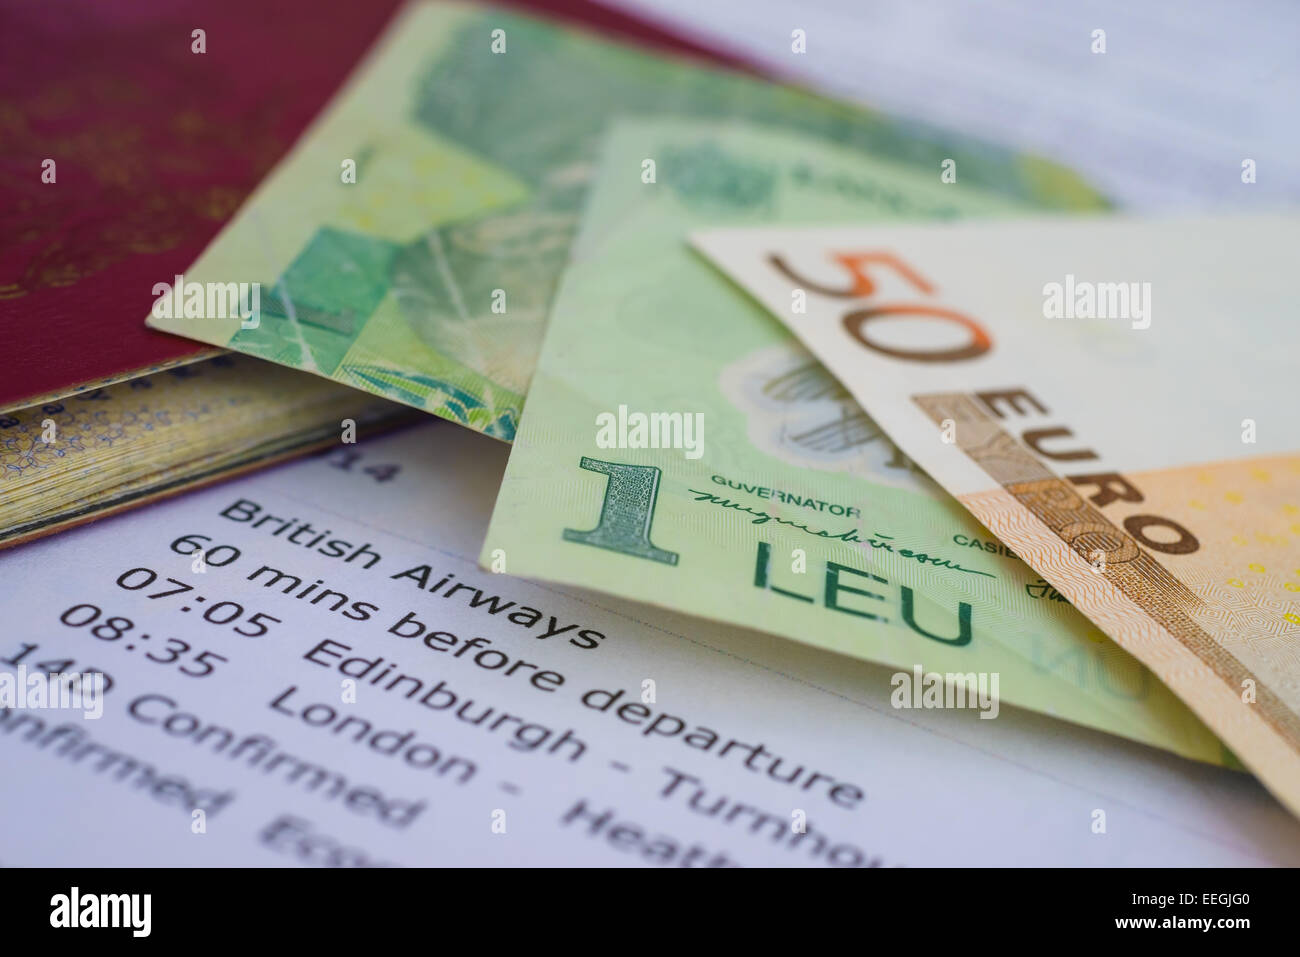 Travel documents, passport, foreign money (Euro and Romanian Leu) and flight itinerary for travelling. - Stock Image